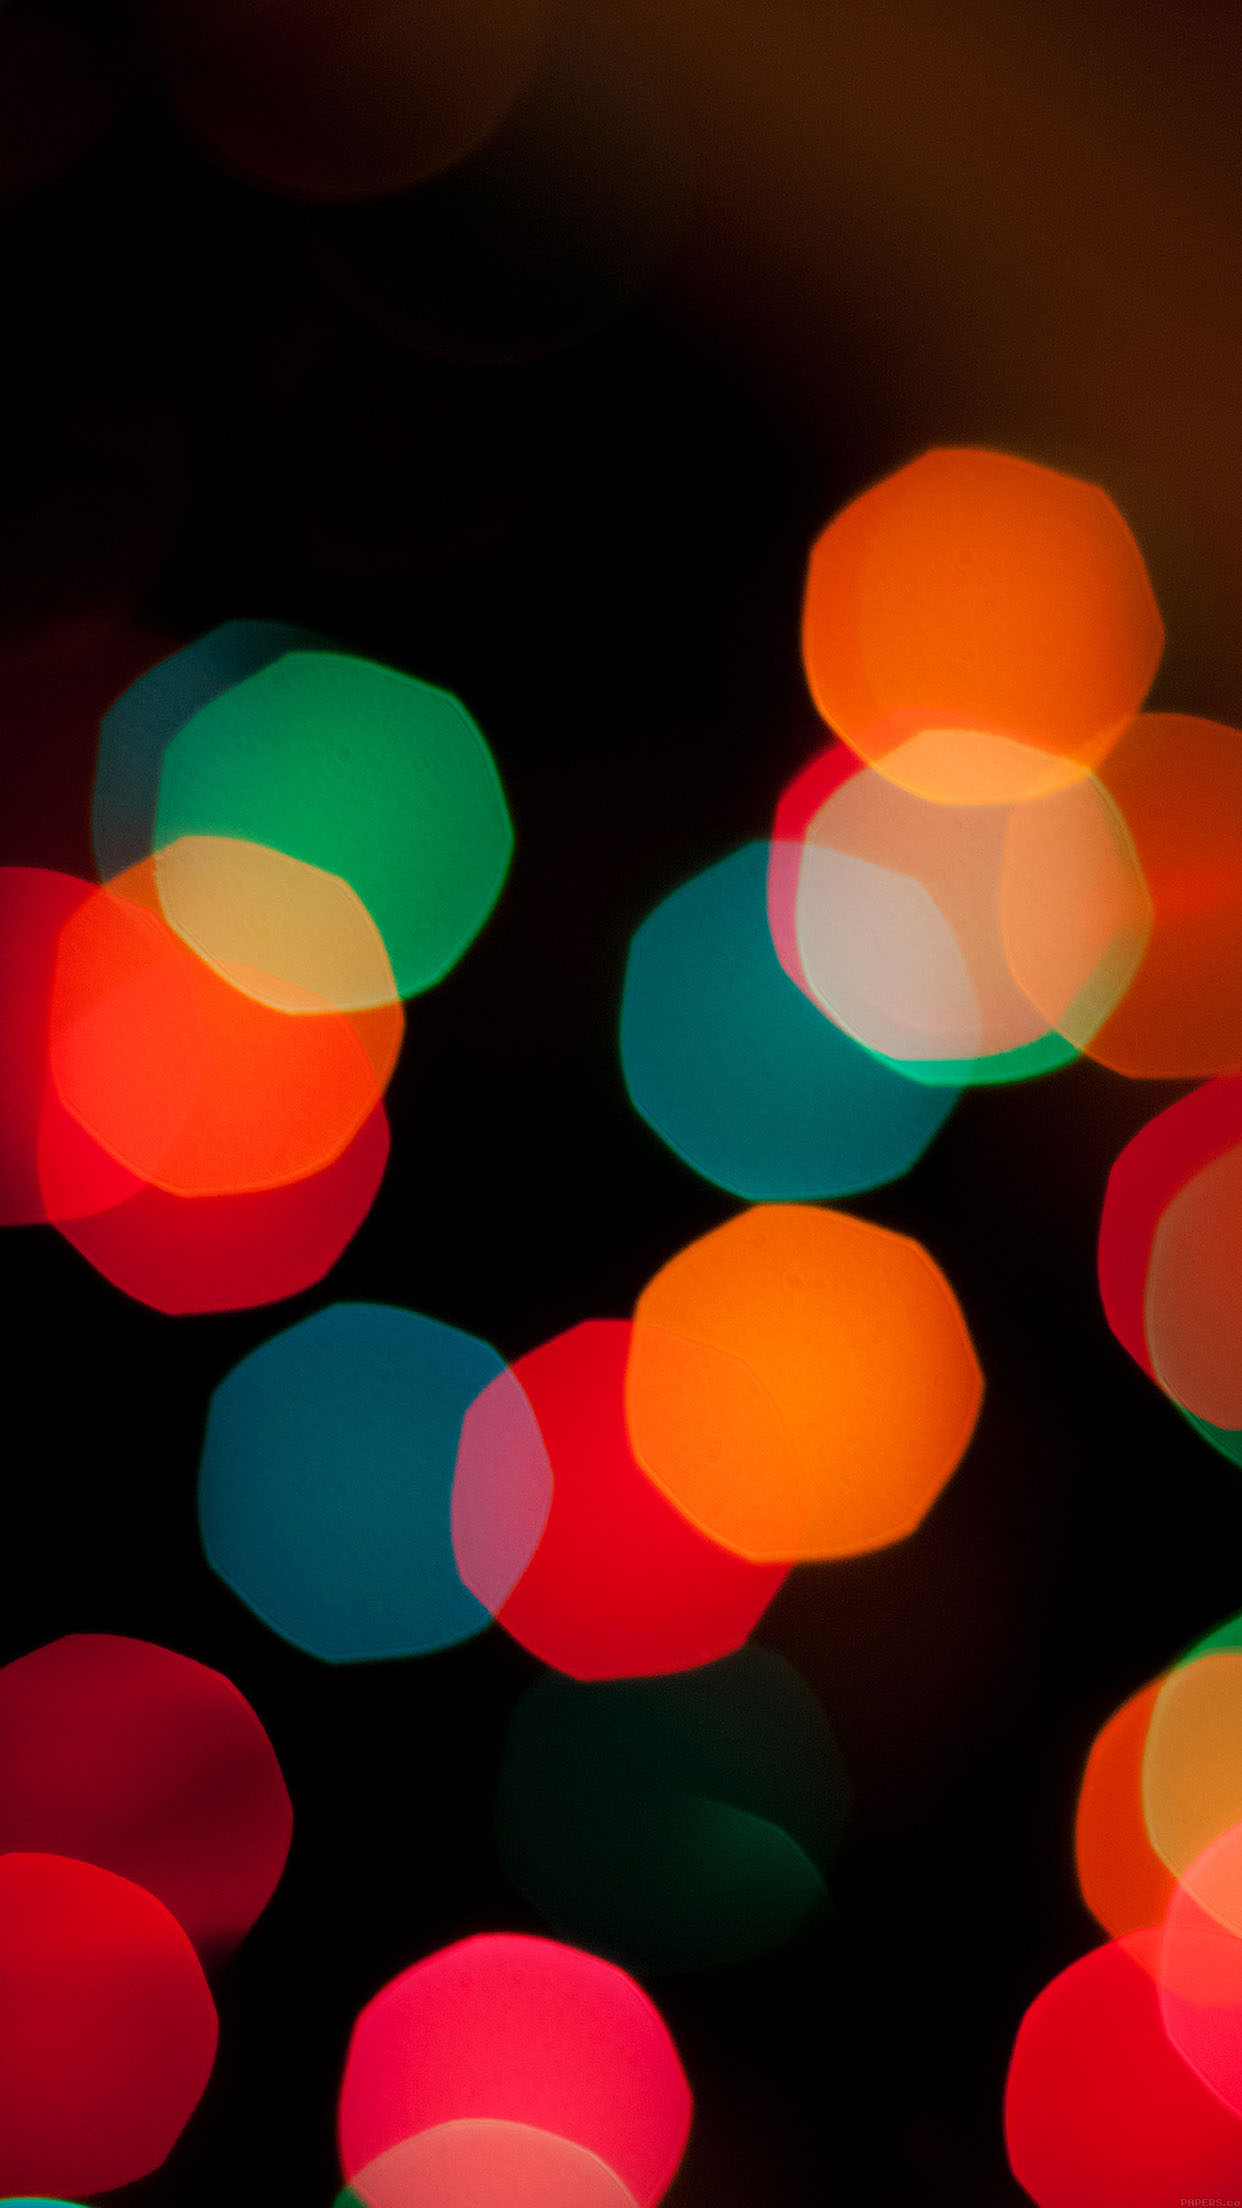 Full Hd Wallpapers For Iphone 6 Plus - Iphone Abstract Christmas - HD Wallpaper